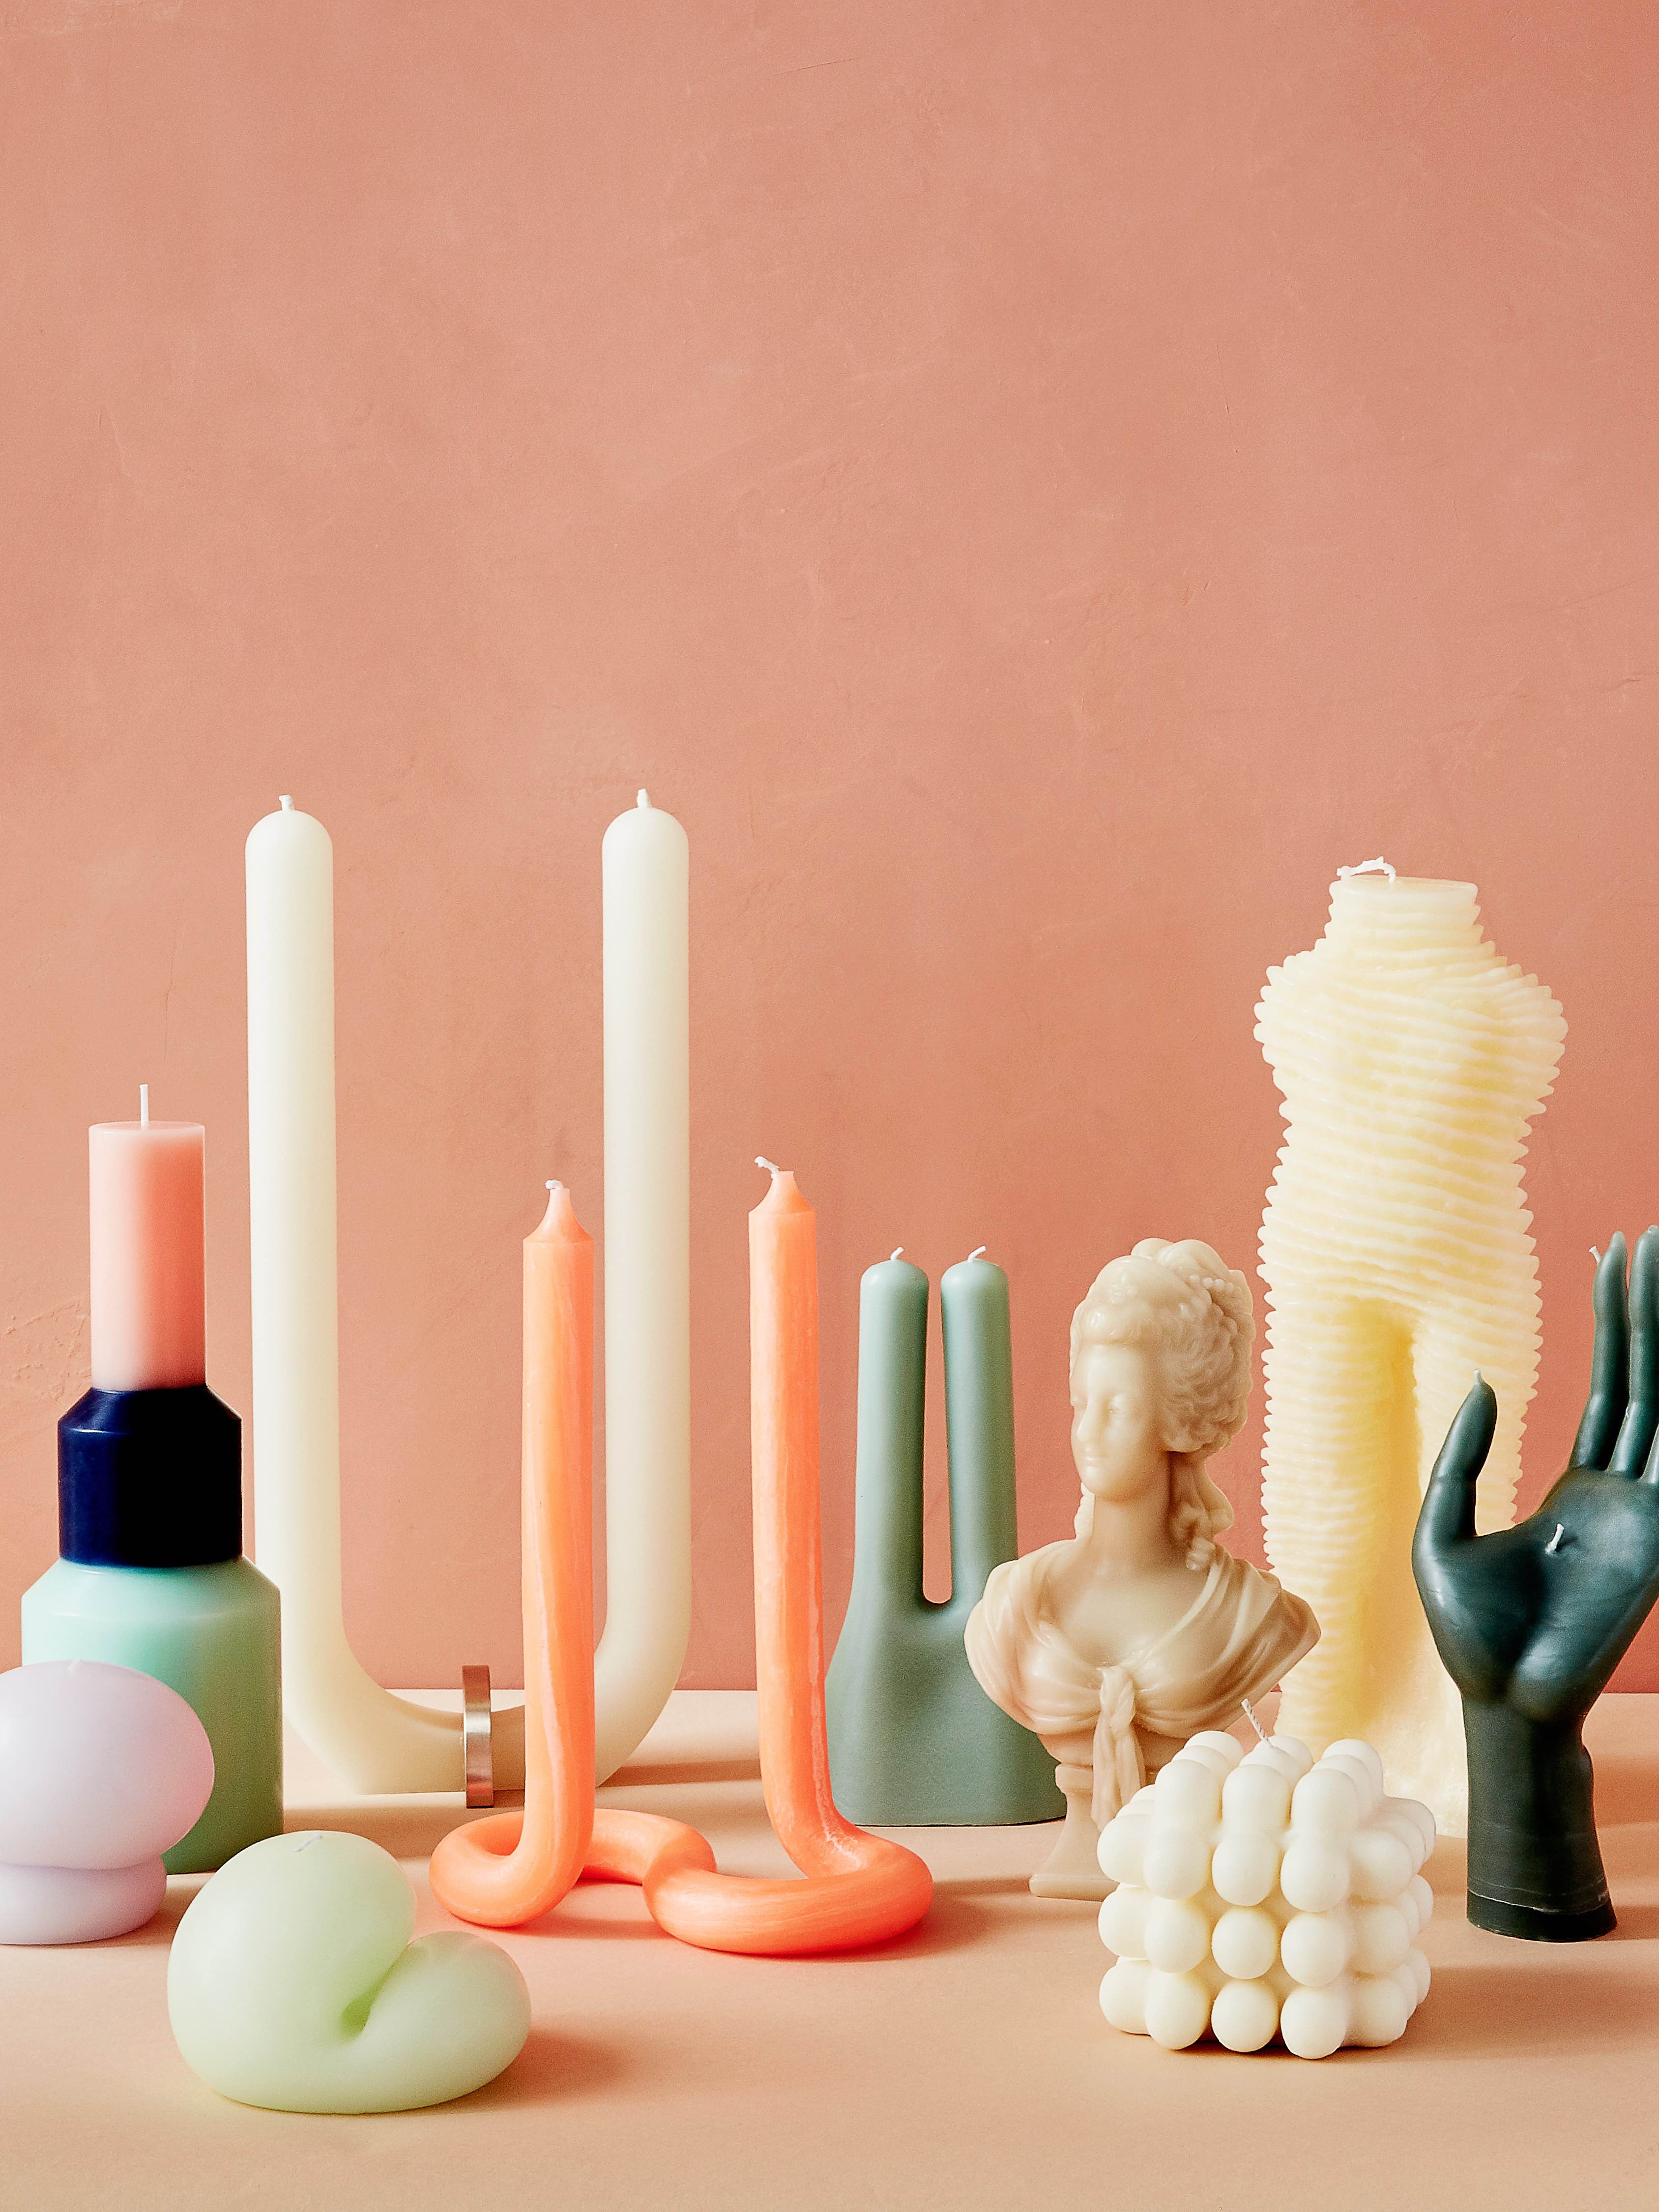 What Happens When You Burn These Candles?